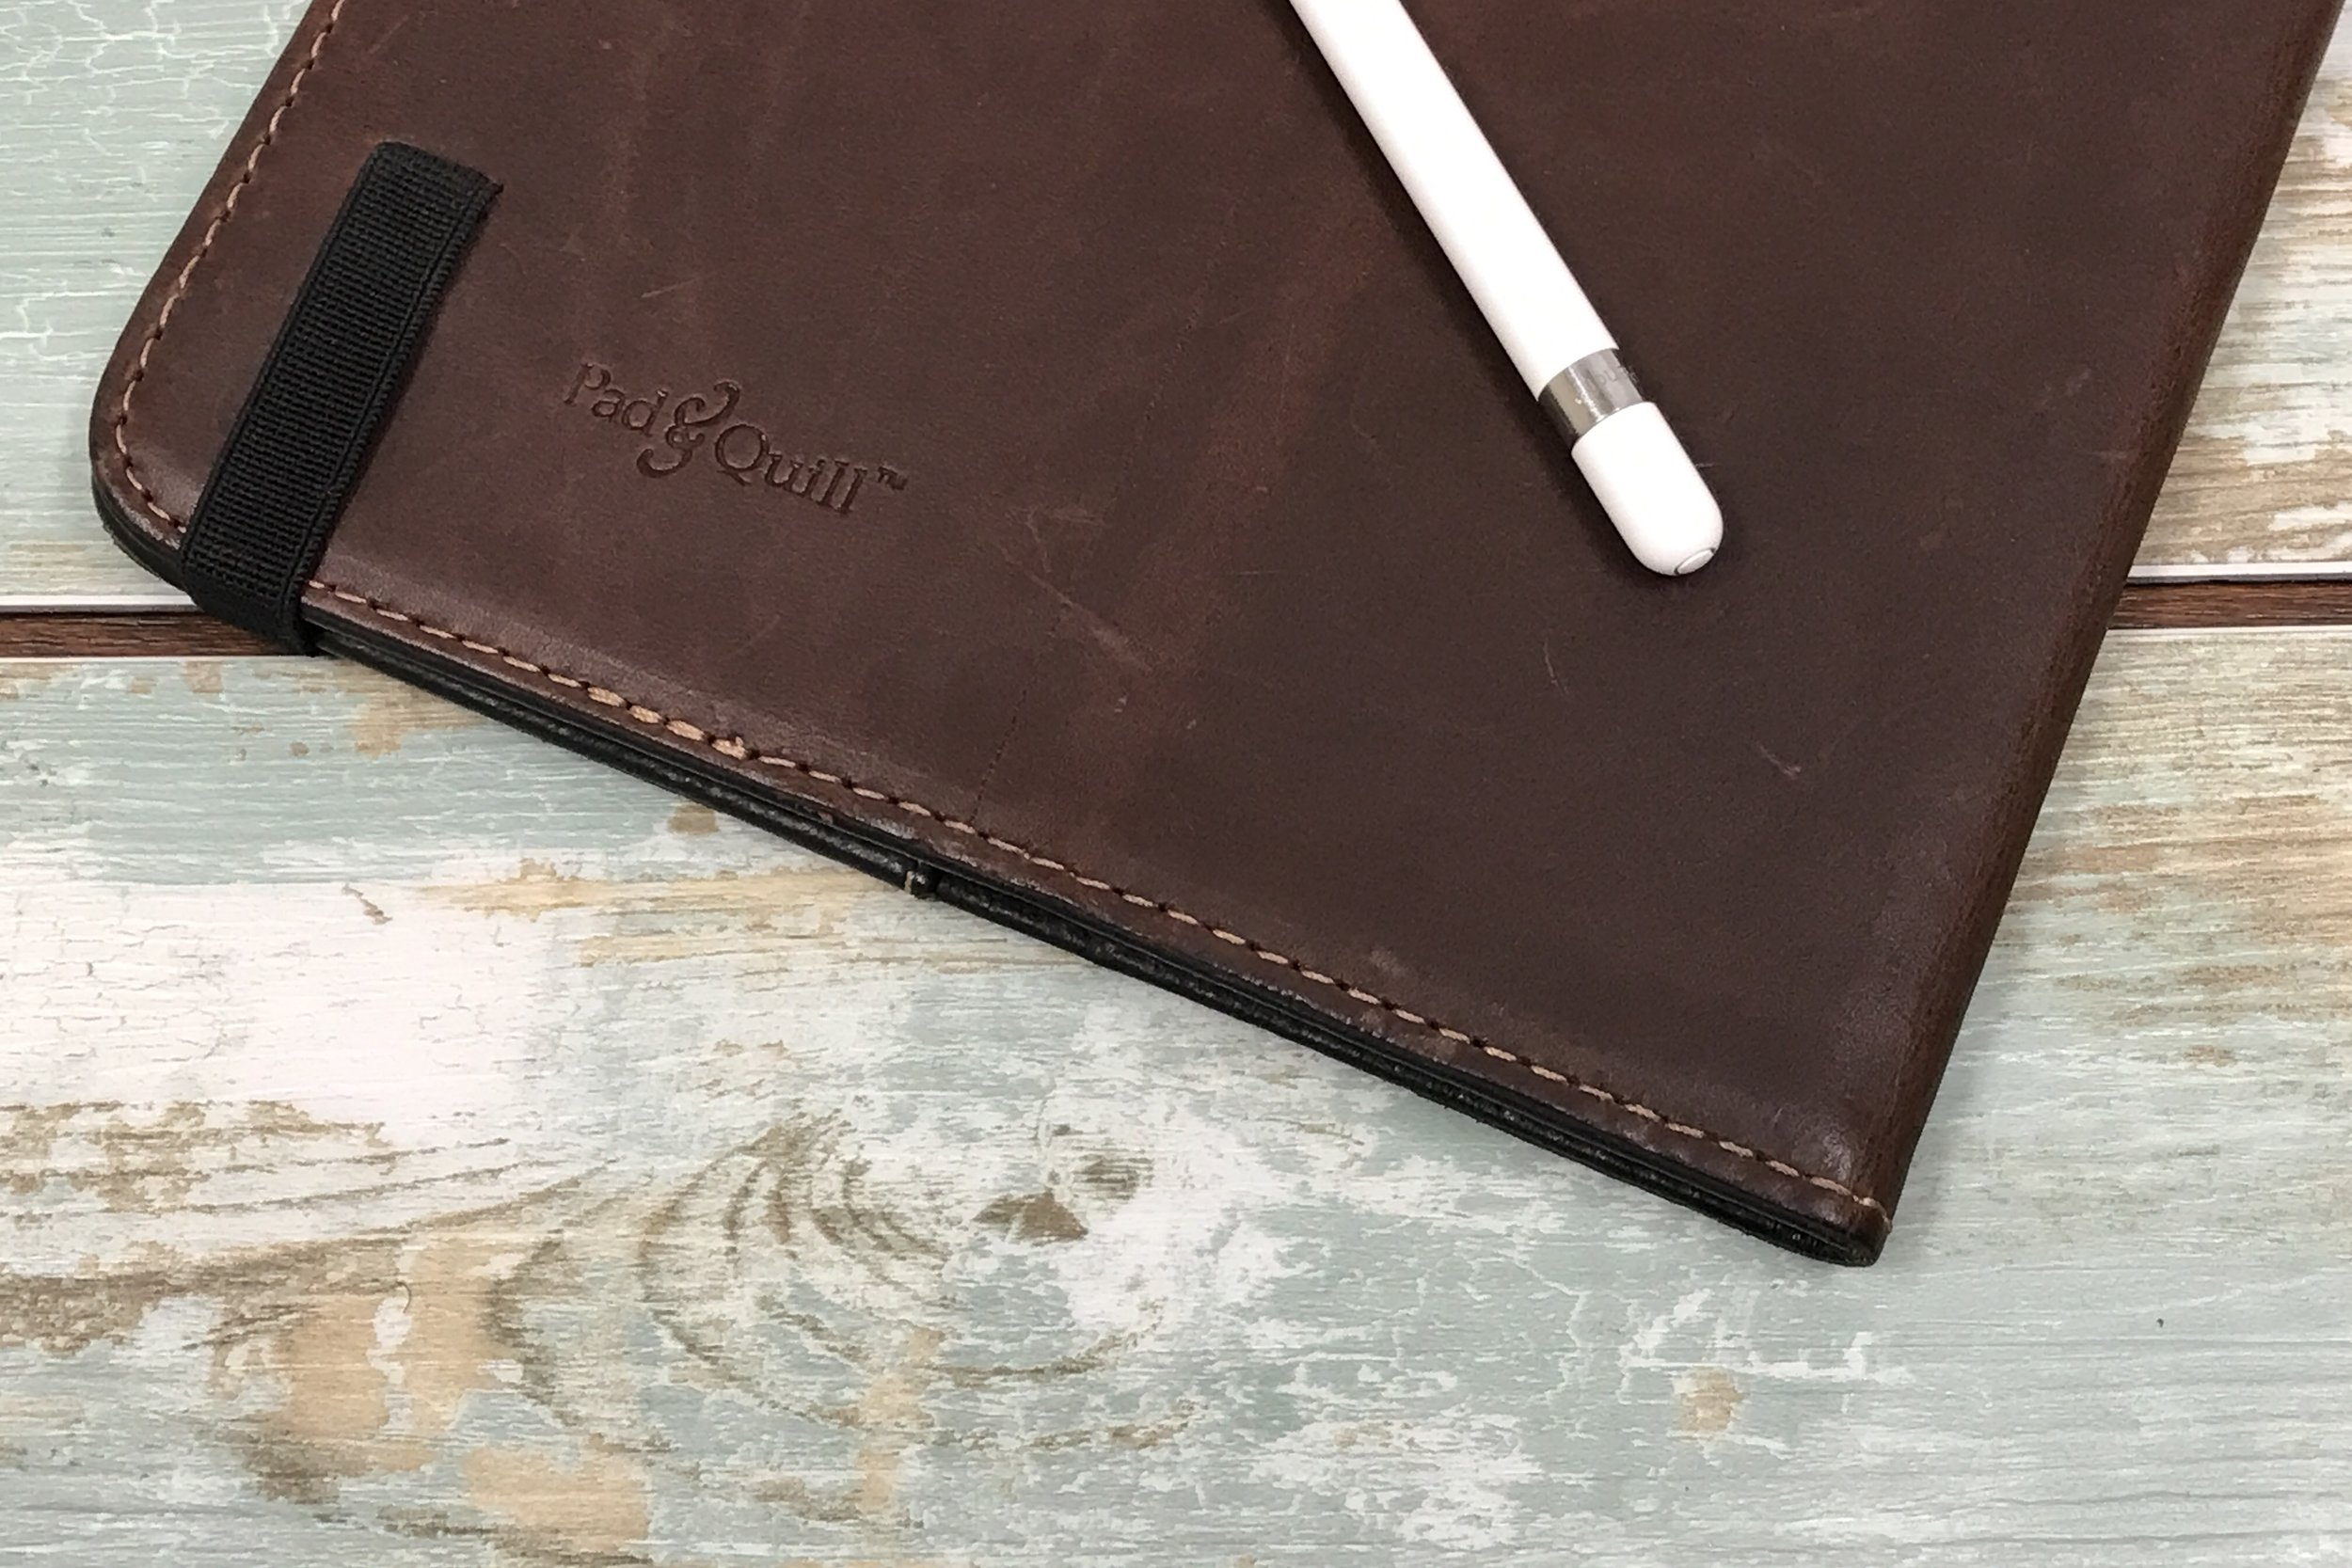 """Pad & Quill Oxford Leather Case for the iPad Pro 9.7"""" with the Apple Pencil."""